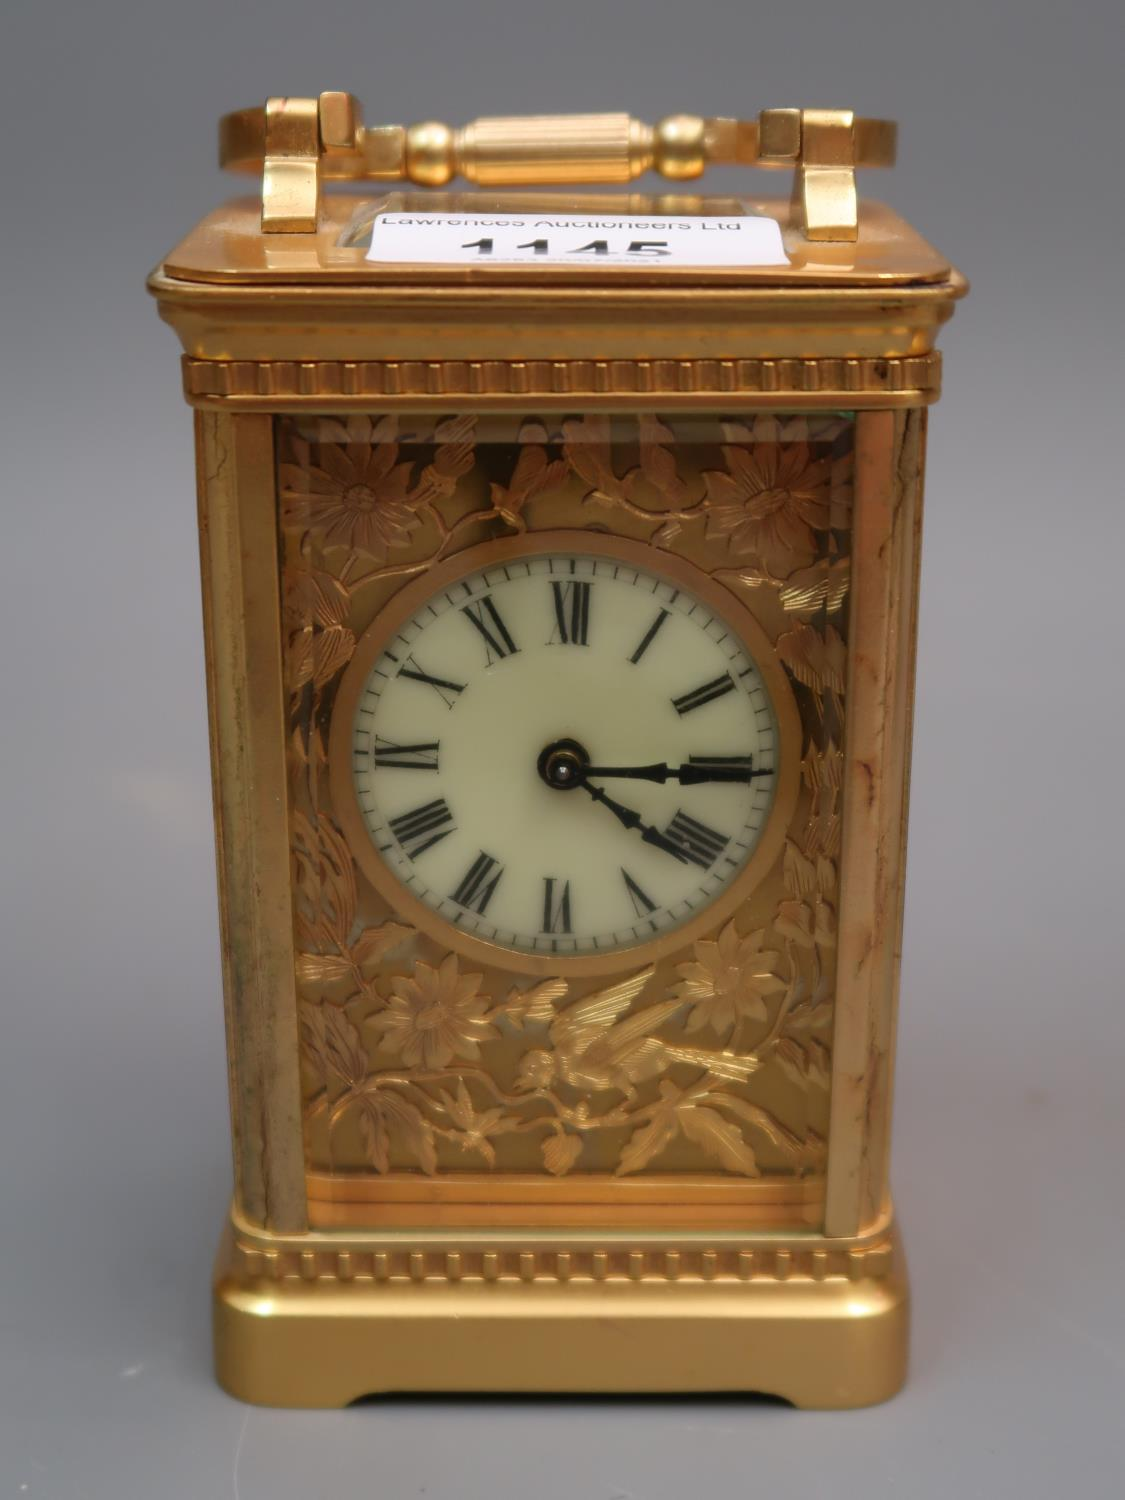 Early 20th Century gilt brass cased carriage clock, the enamel and gilt fretwork dial with Roman